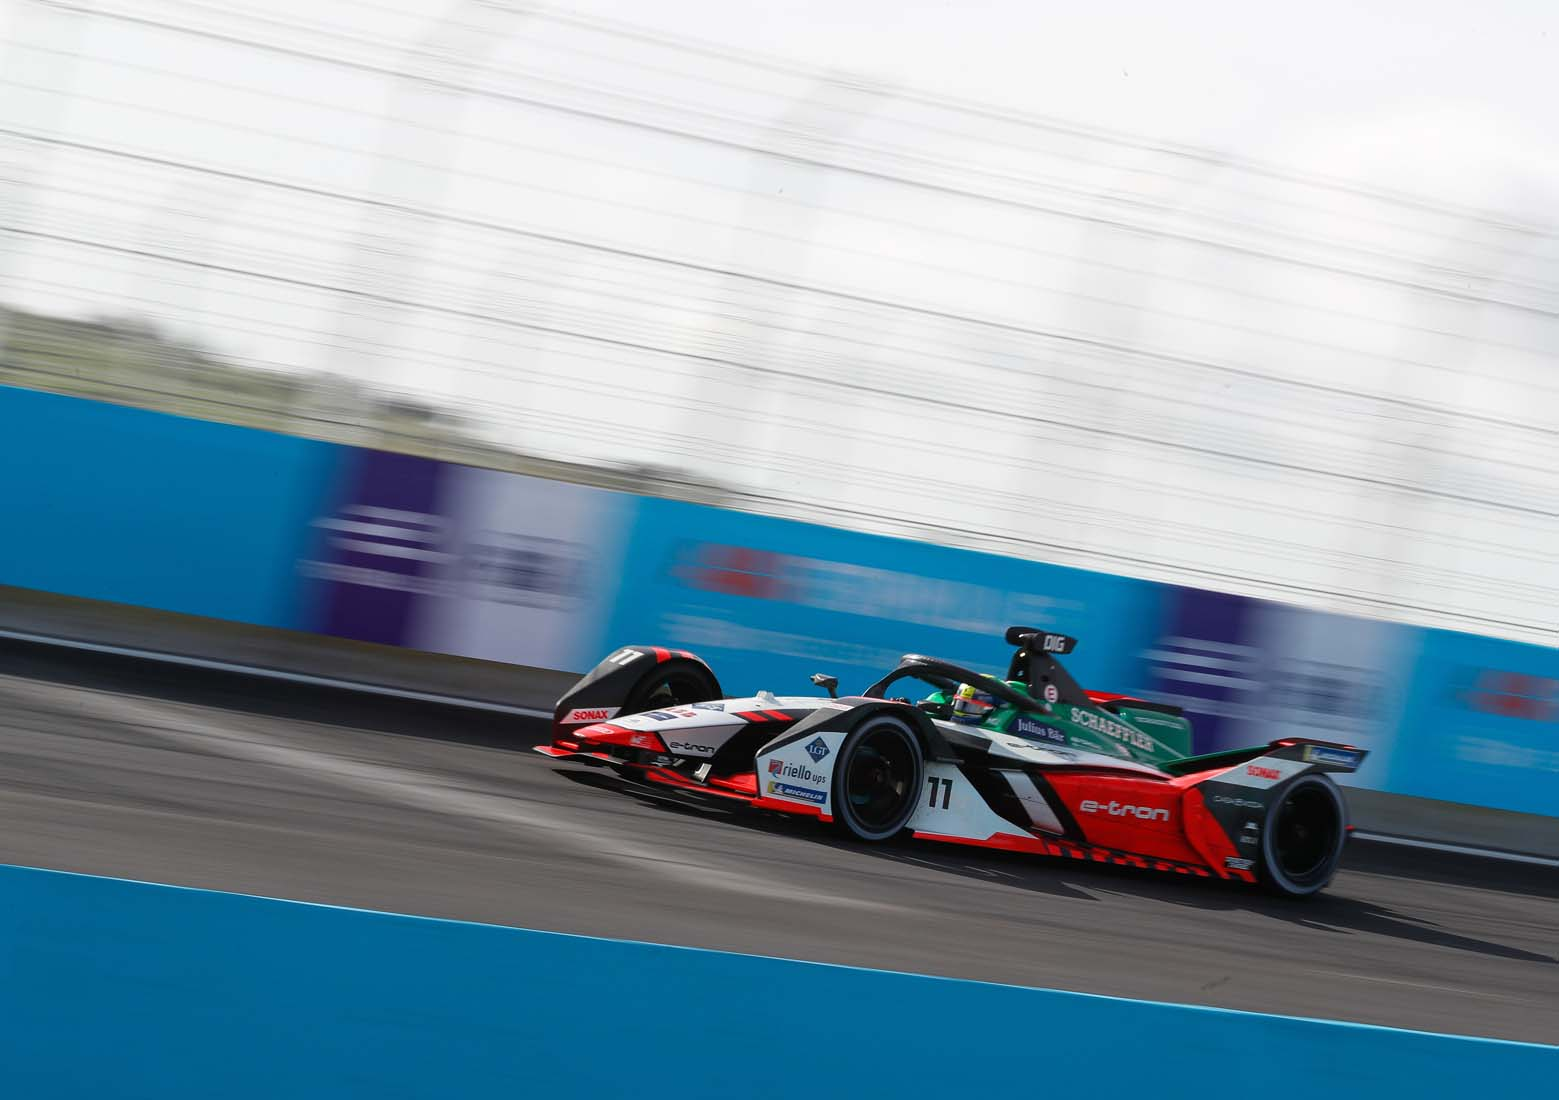 Formula E is coming to South Africa